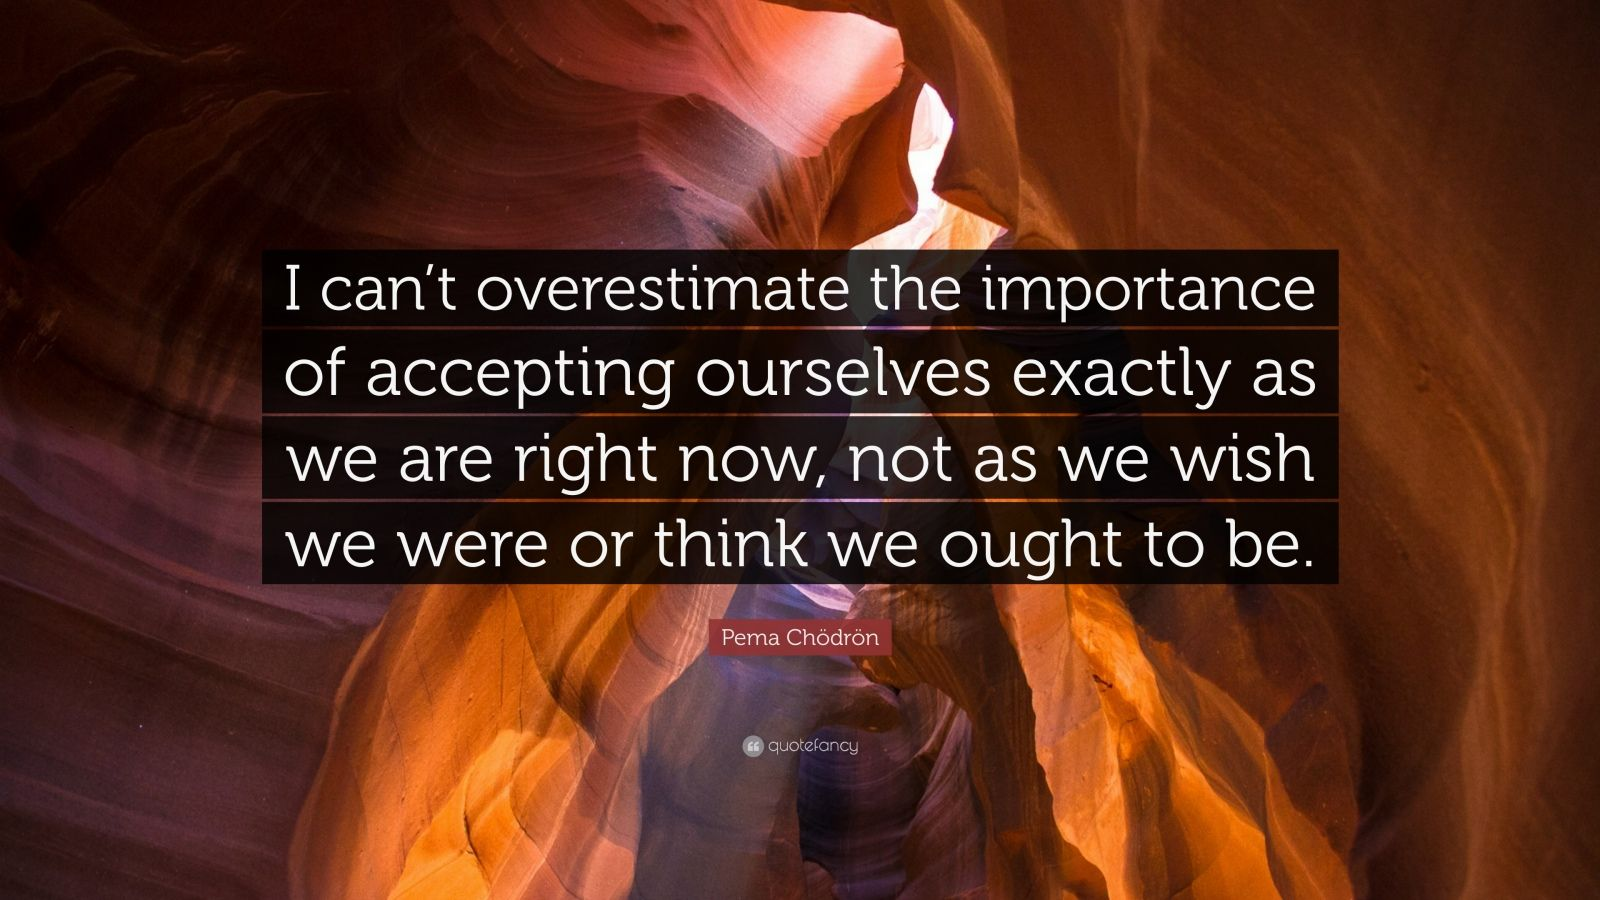 """Pema Chödrön Quote: """"I can't overestimate the importance of accepting ourselves exactly as we are right now, not as we wish we were or think we ought to be."""""""